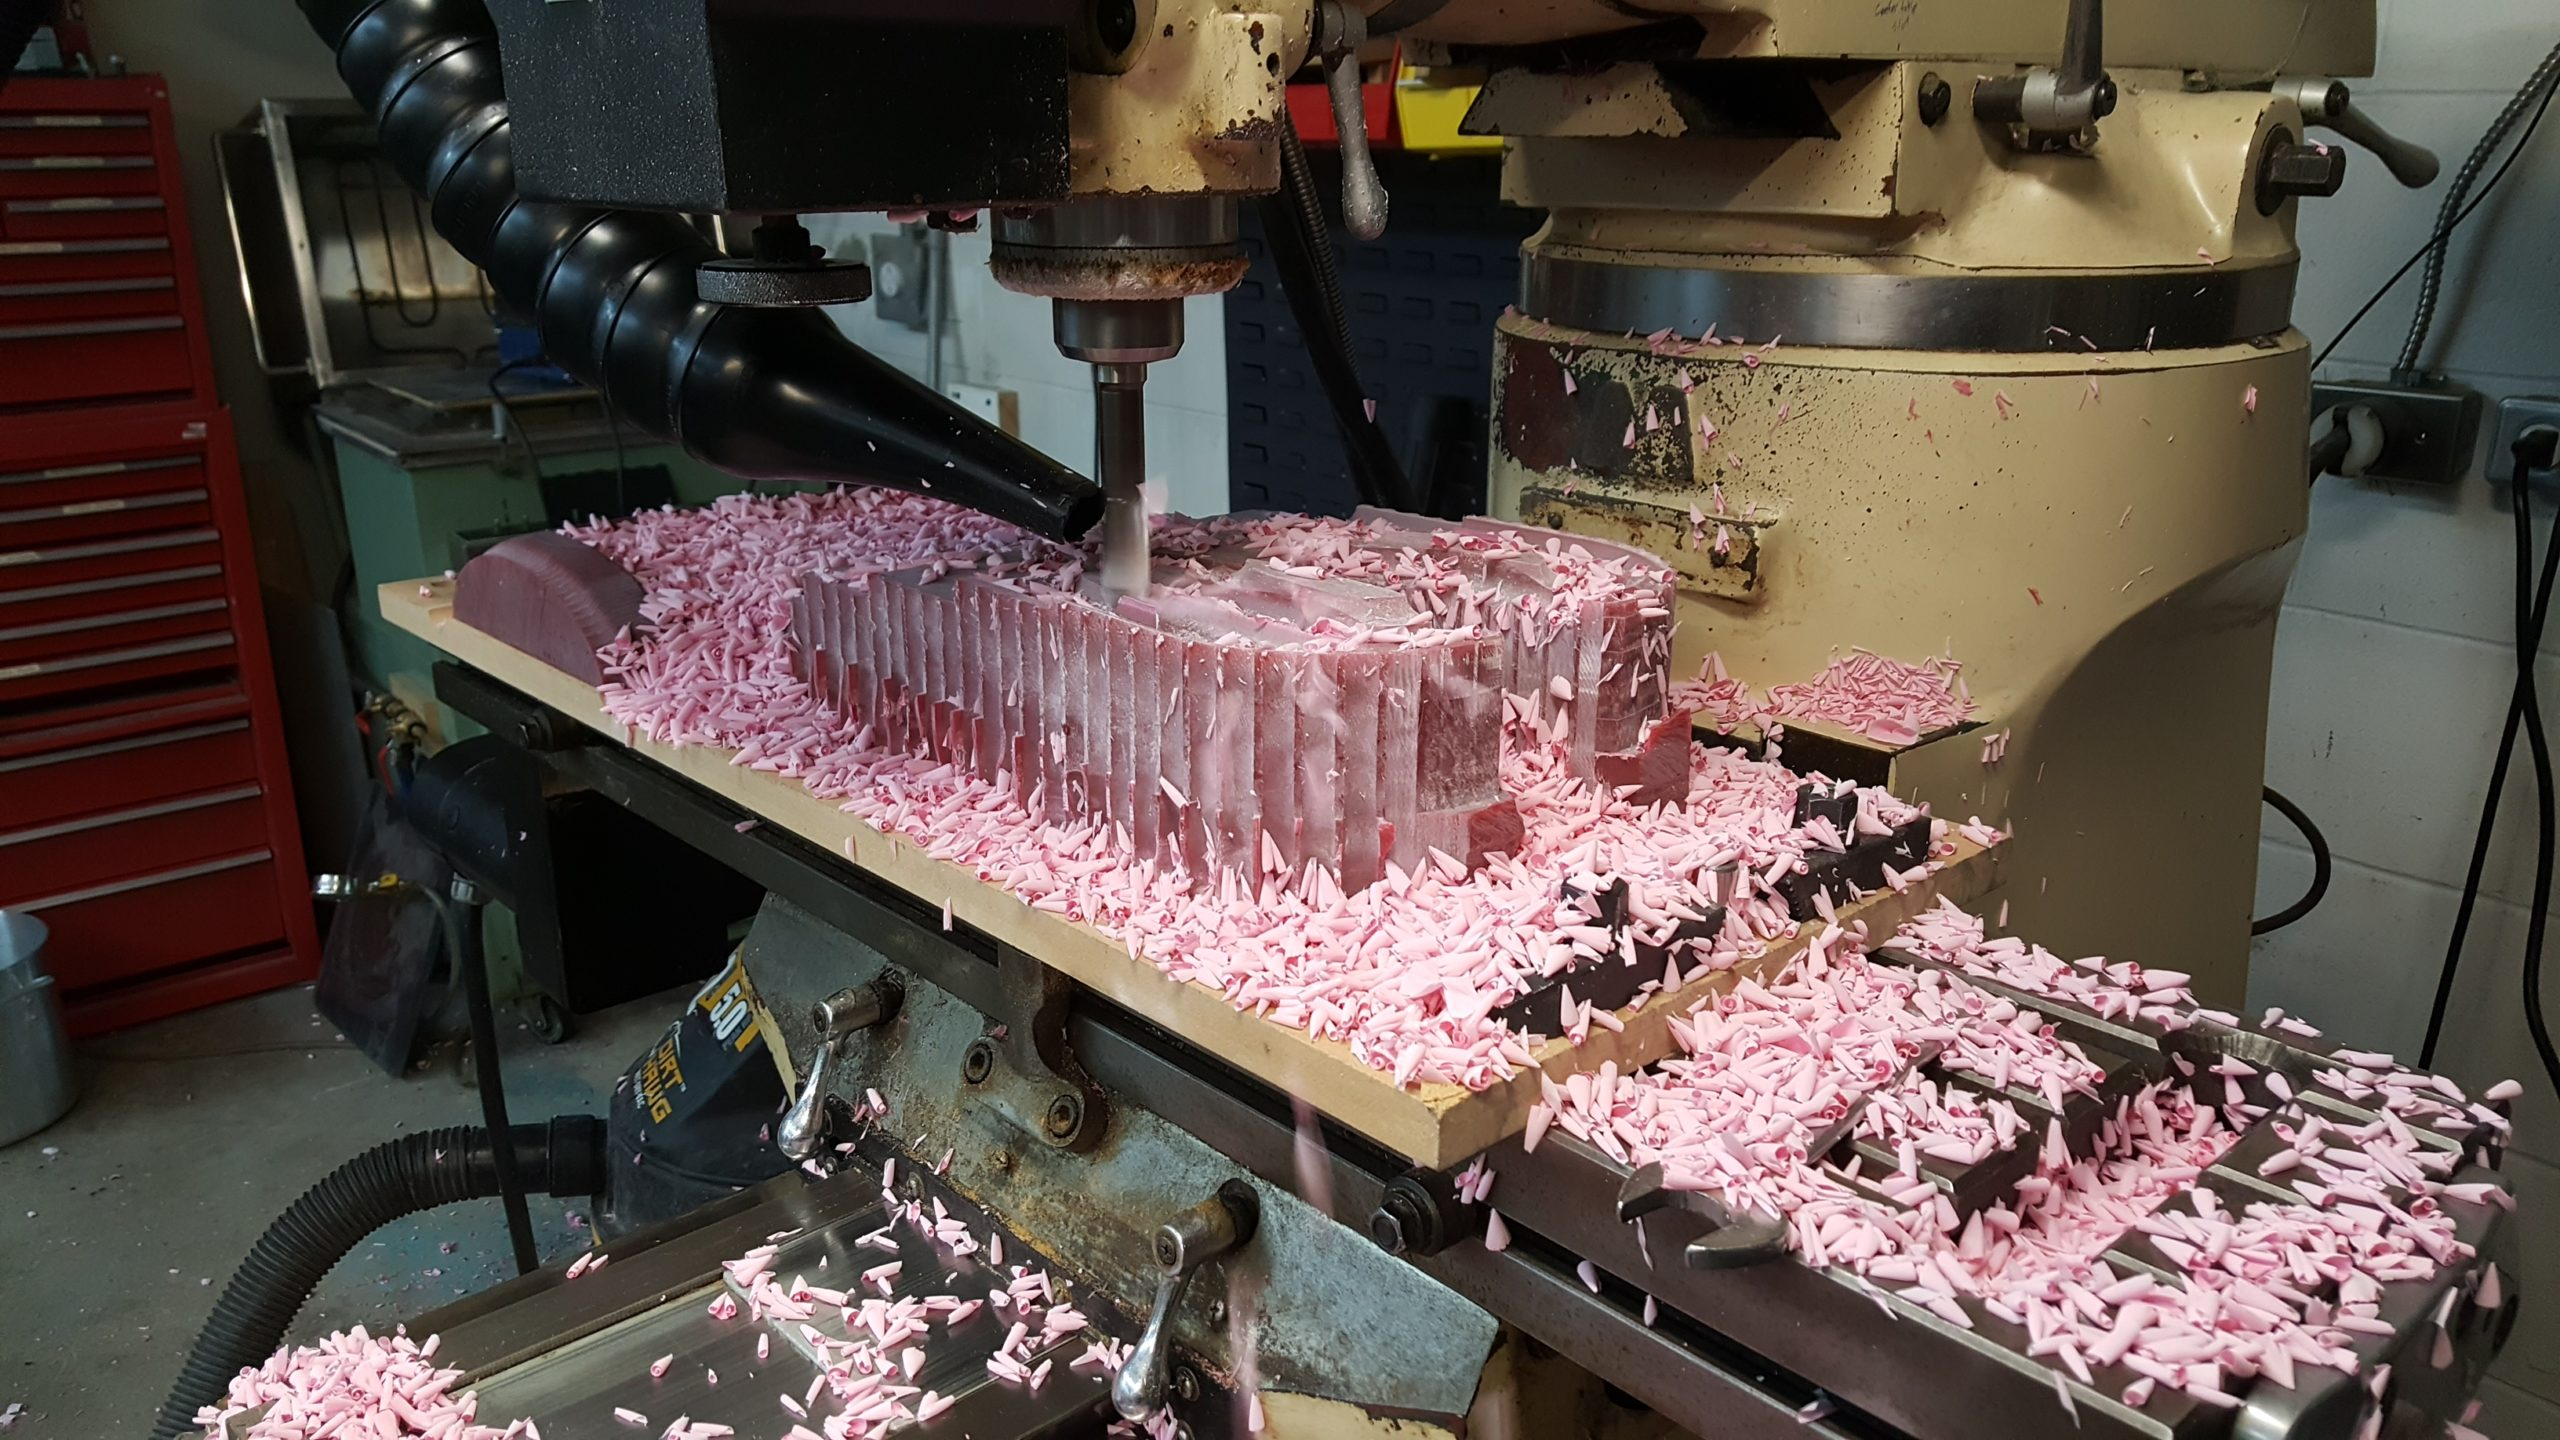 Mold Milling